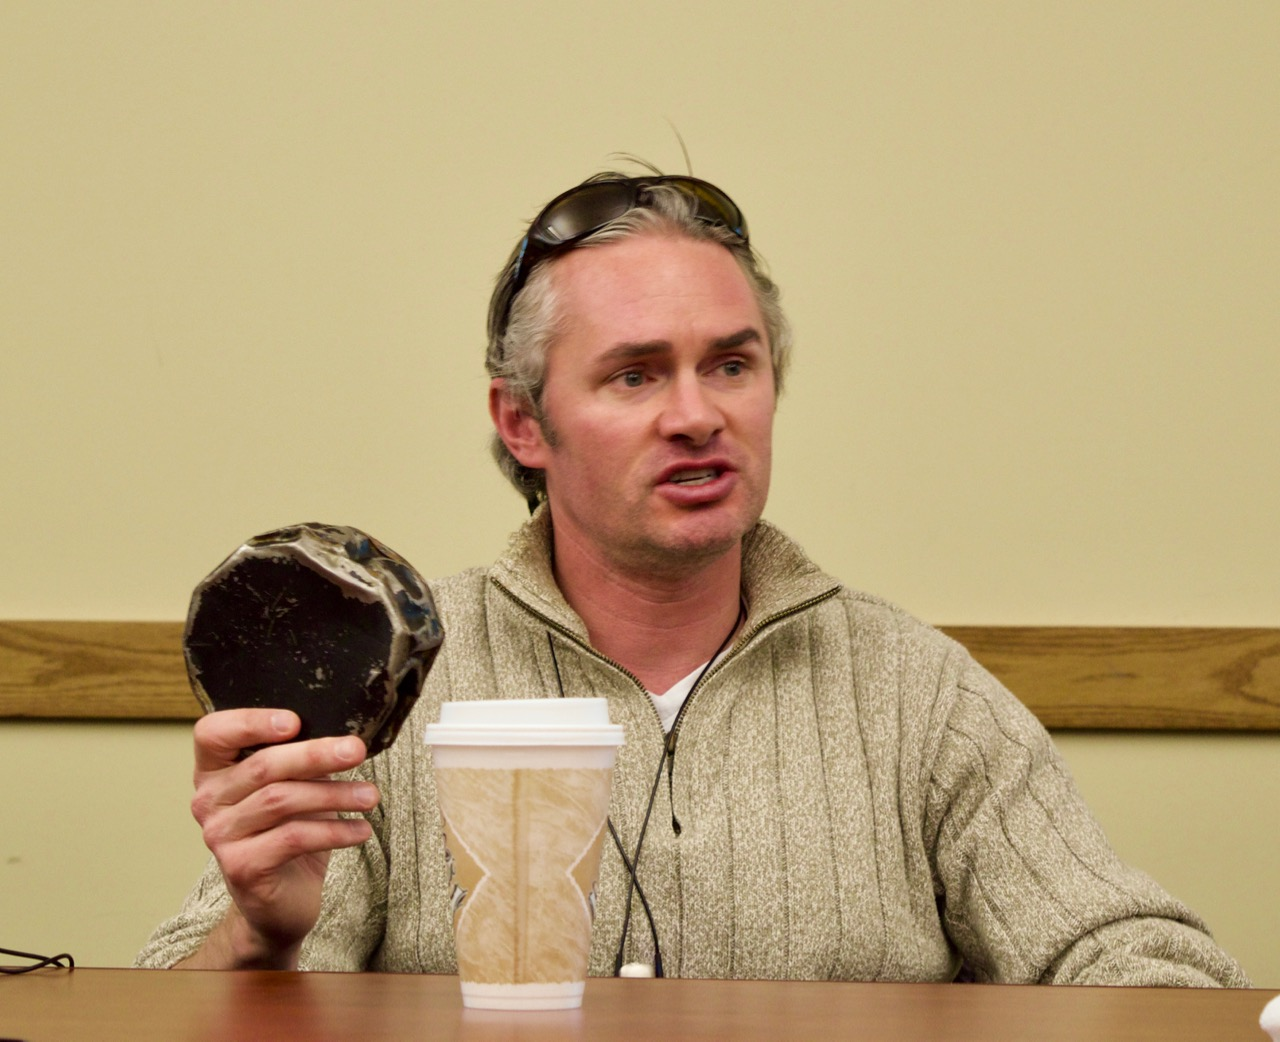 Craig Fitzpatrick holds up an adapted hockey puck while he gives a talk about Blind Hockey at the Colorado Center for the Blind